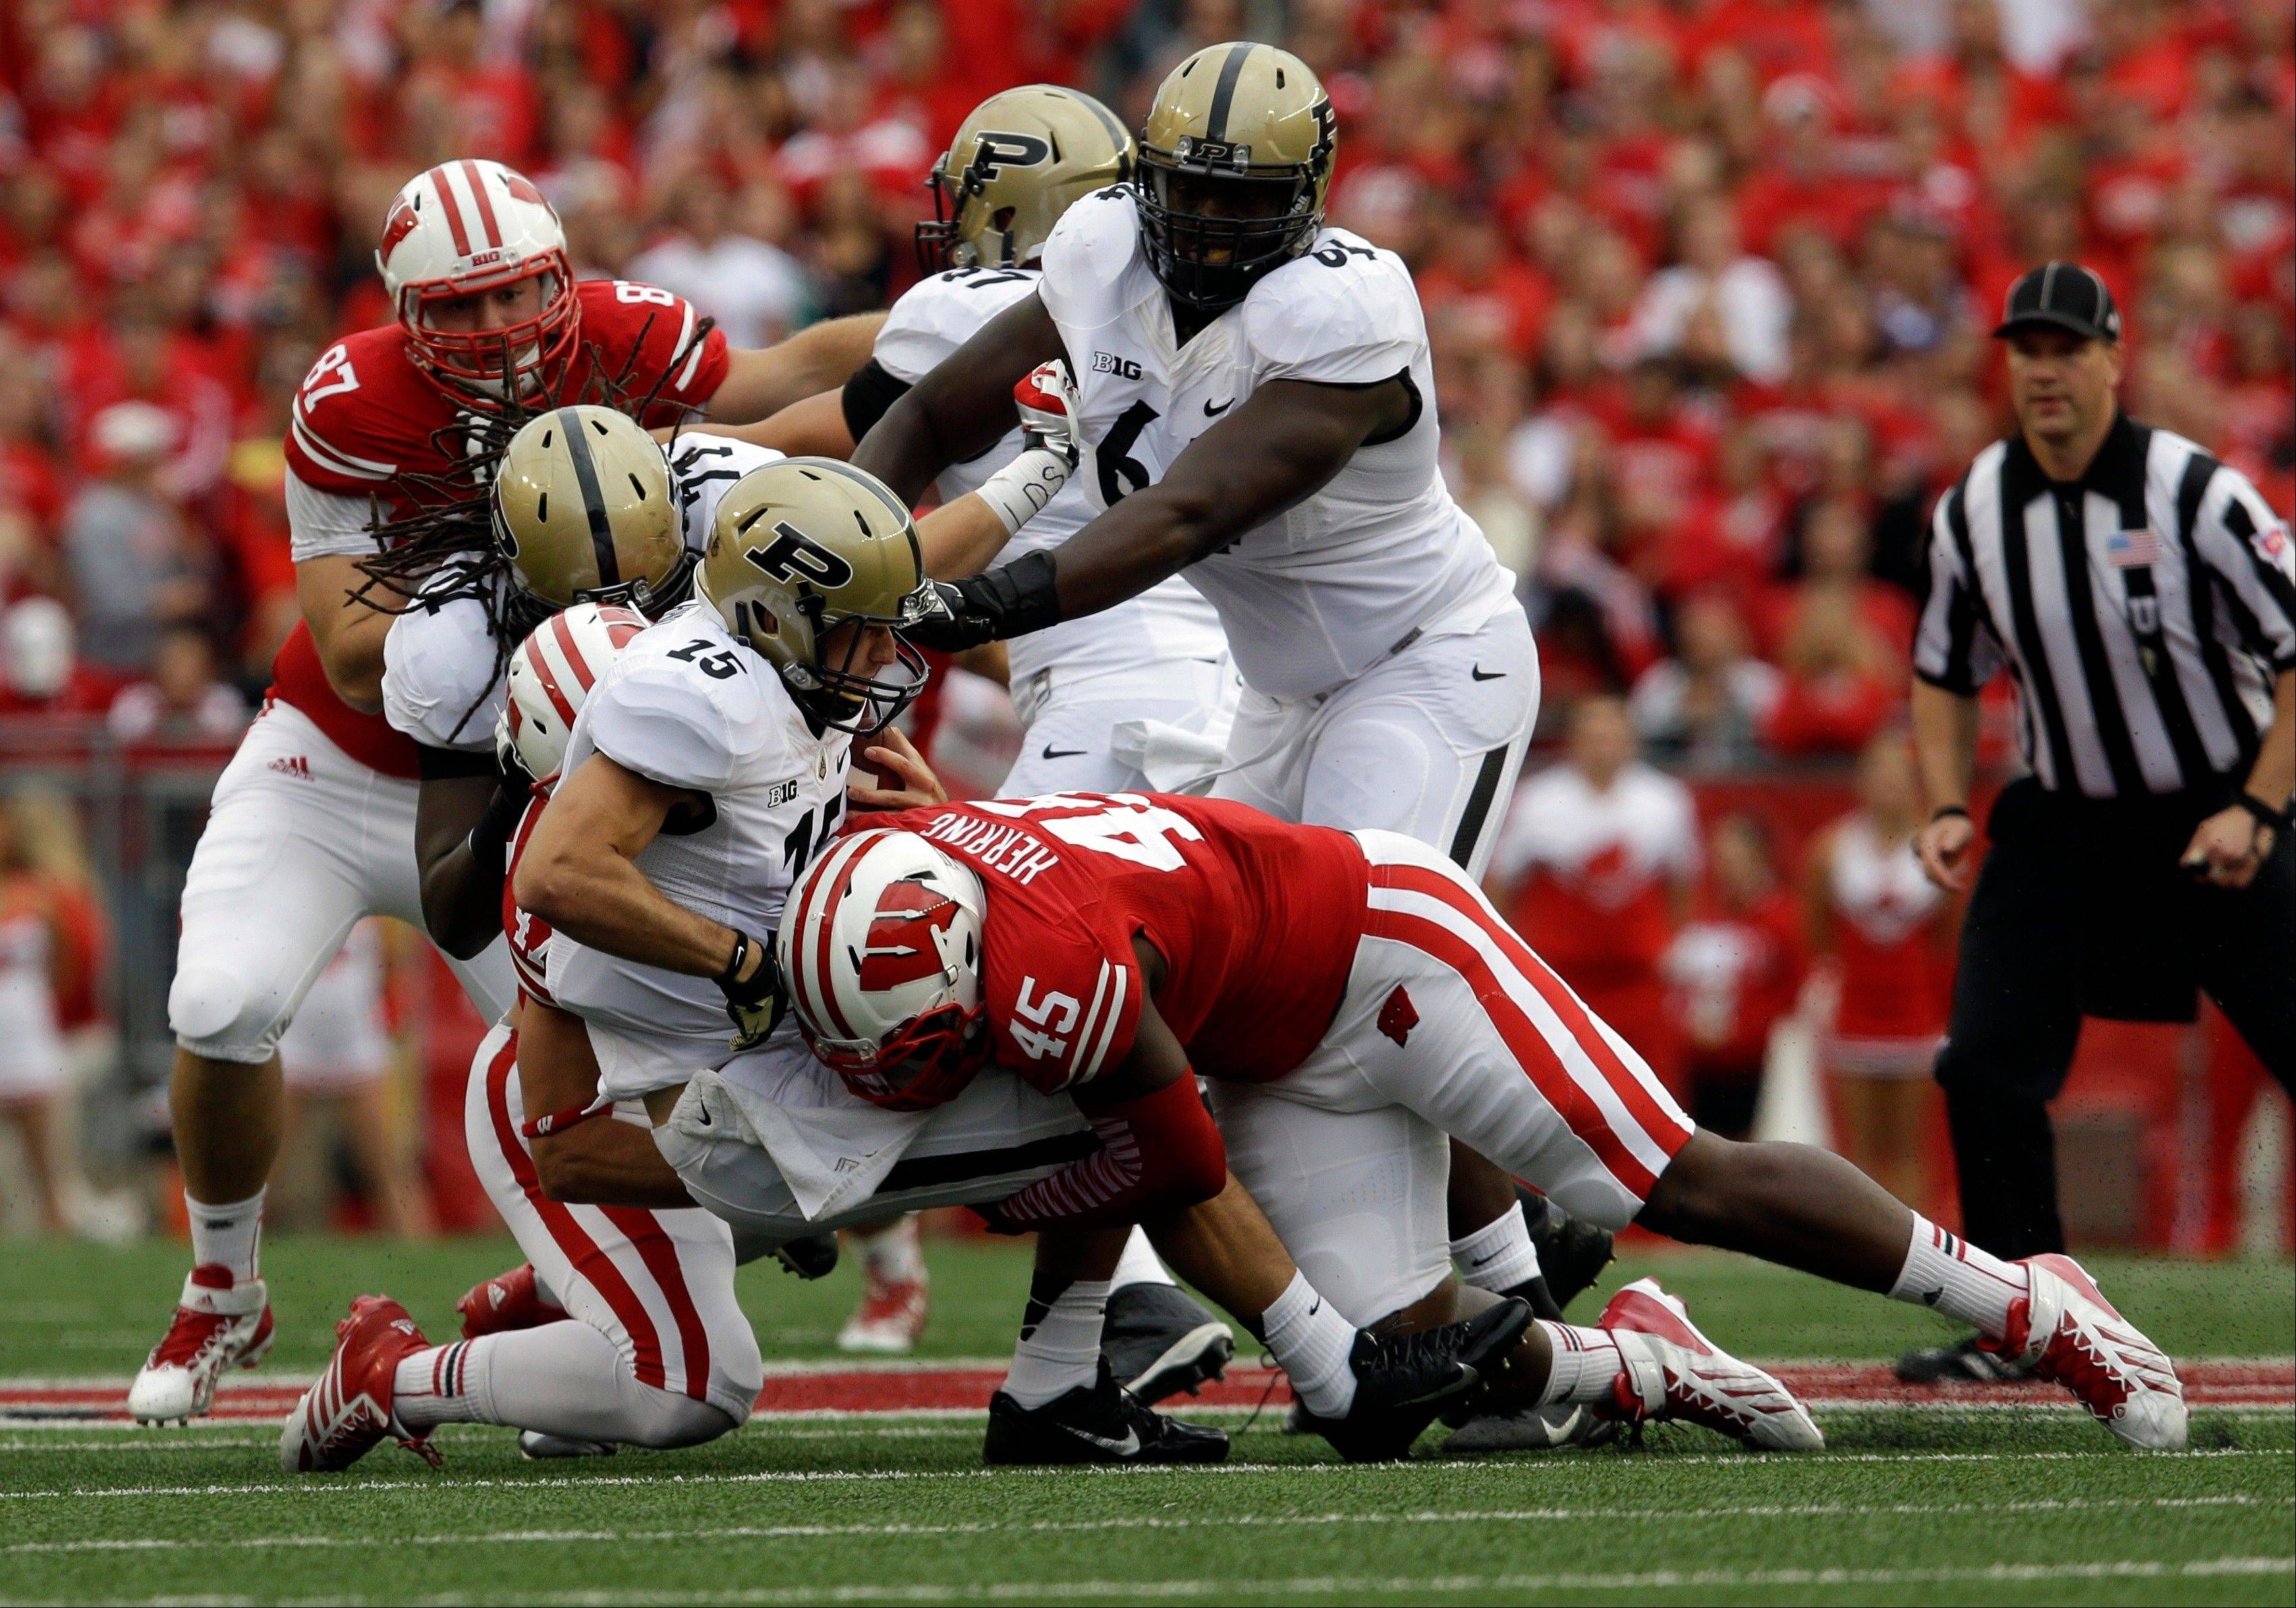 Wisconsin�s Warren Herring sacks Purdue quarterback Rob Henry during the first half of Saturday�s game in Madison, Wis. This week against Ohio State, the Badgers would like nothing better than for their big guys up front to decide the game.